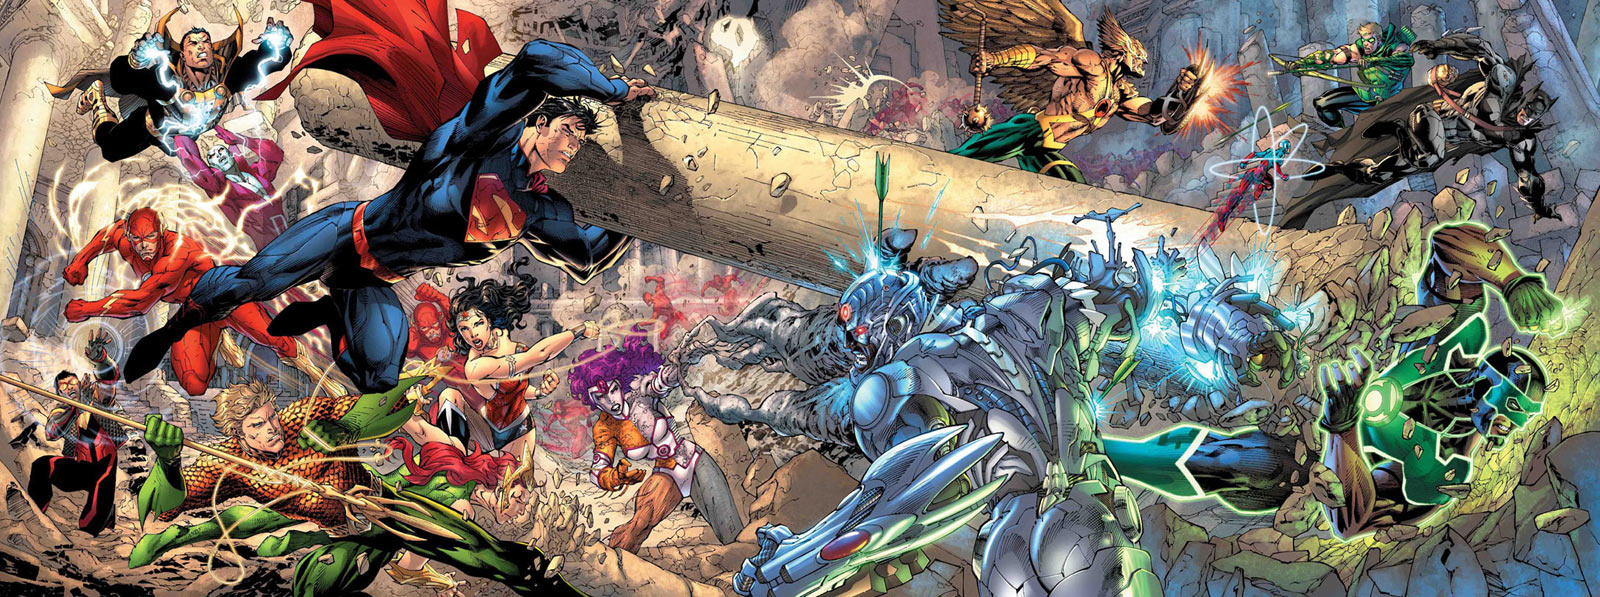 trinity-war-jim-lee-jpg